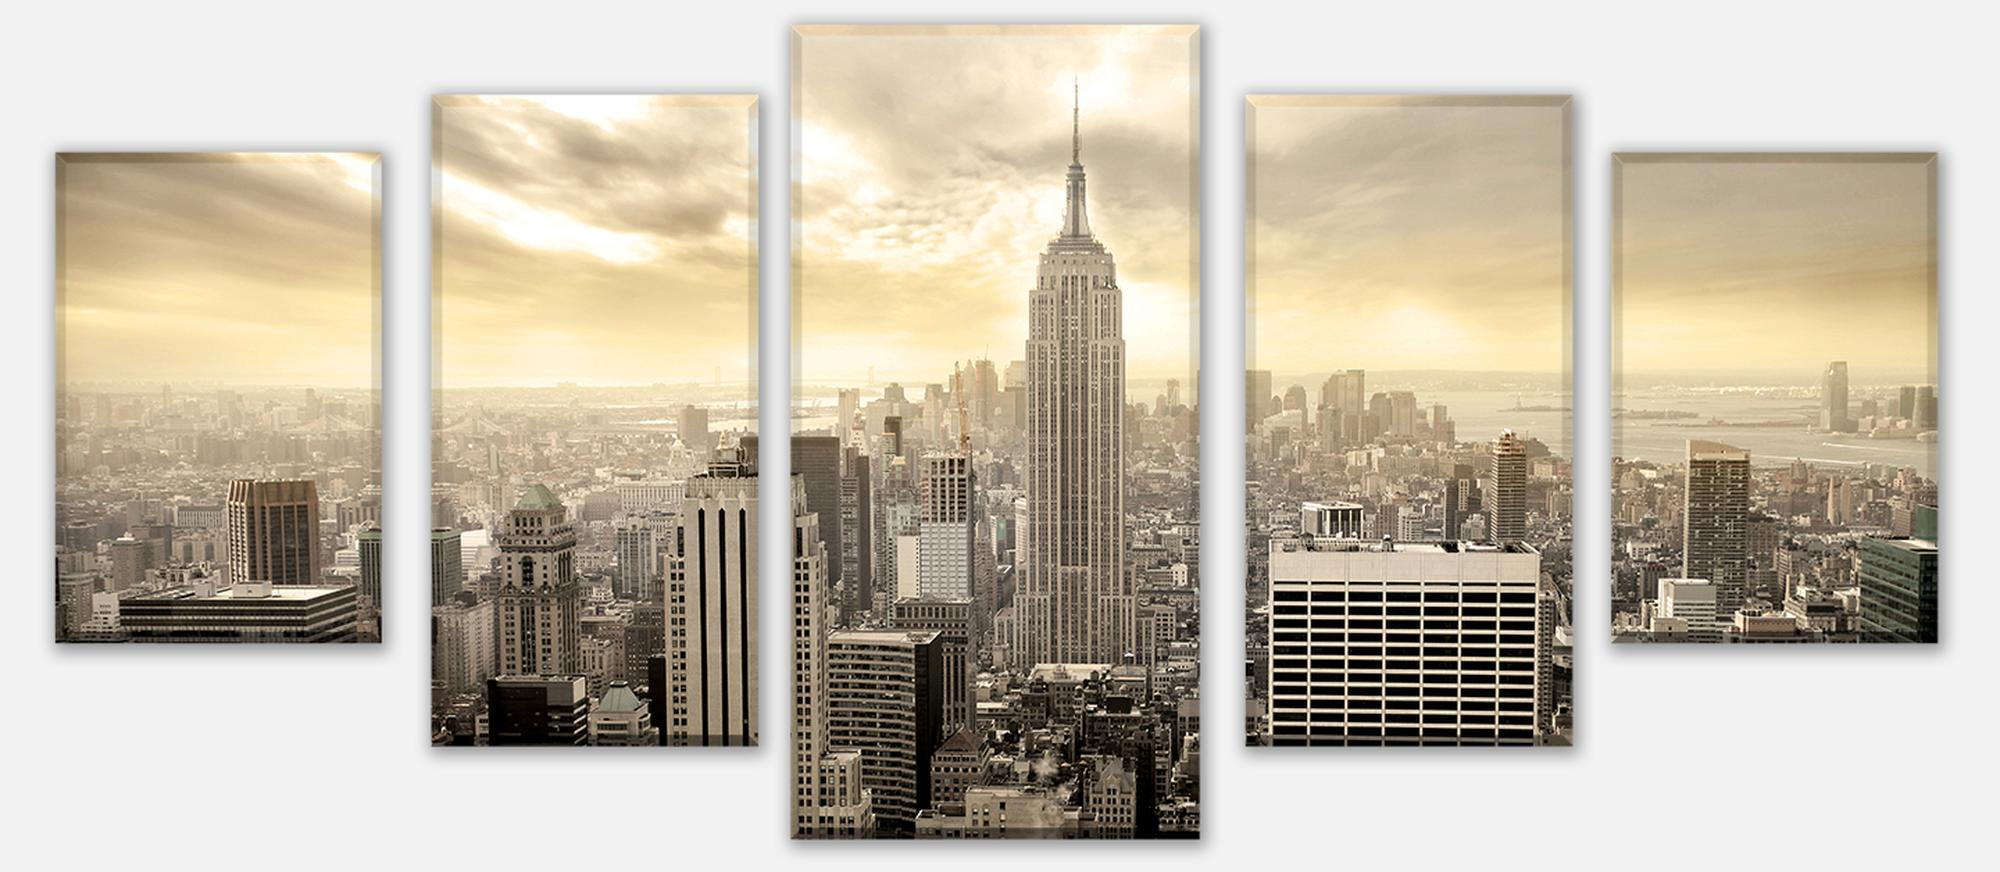 wandmotiv24 leinwandbild mehrteilig new york skyline view m0221 st dte fototapeten g nstig. Black Bedroom Furniture Sets. Home Design Ideas